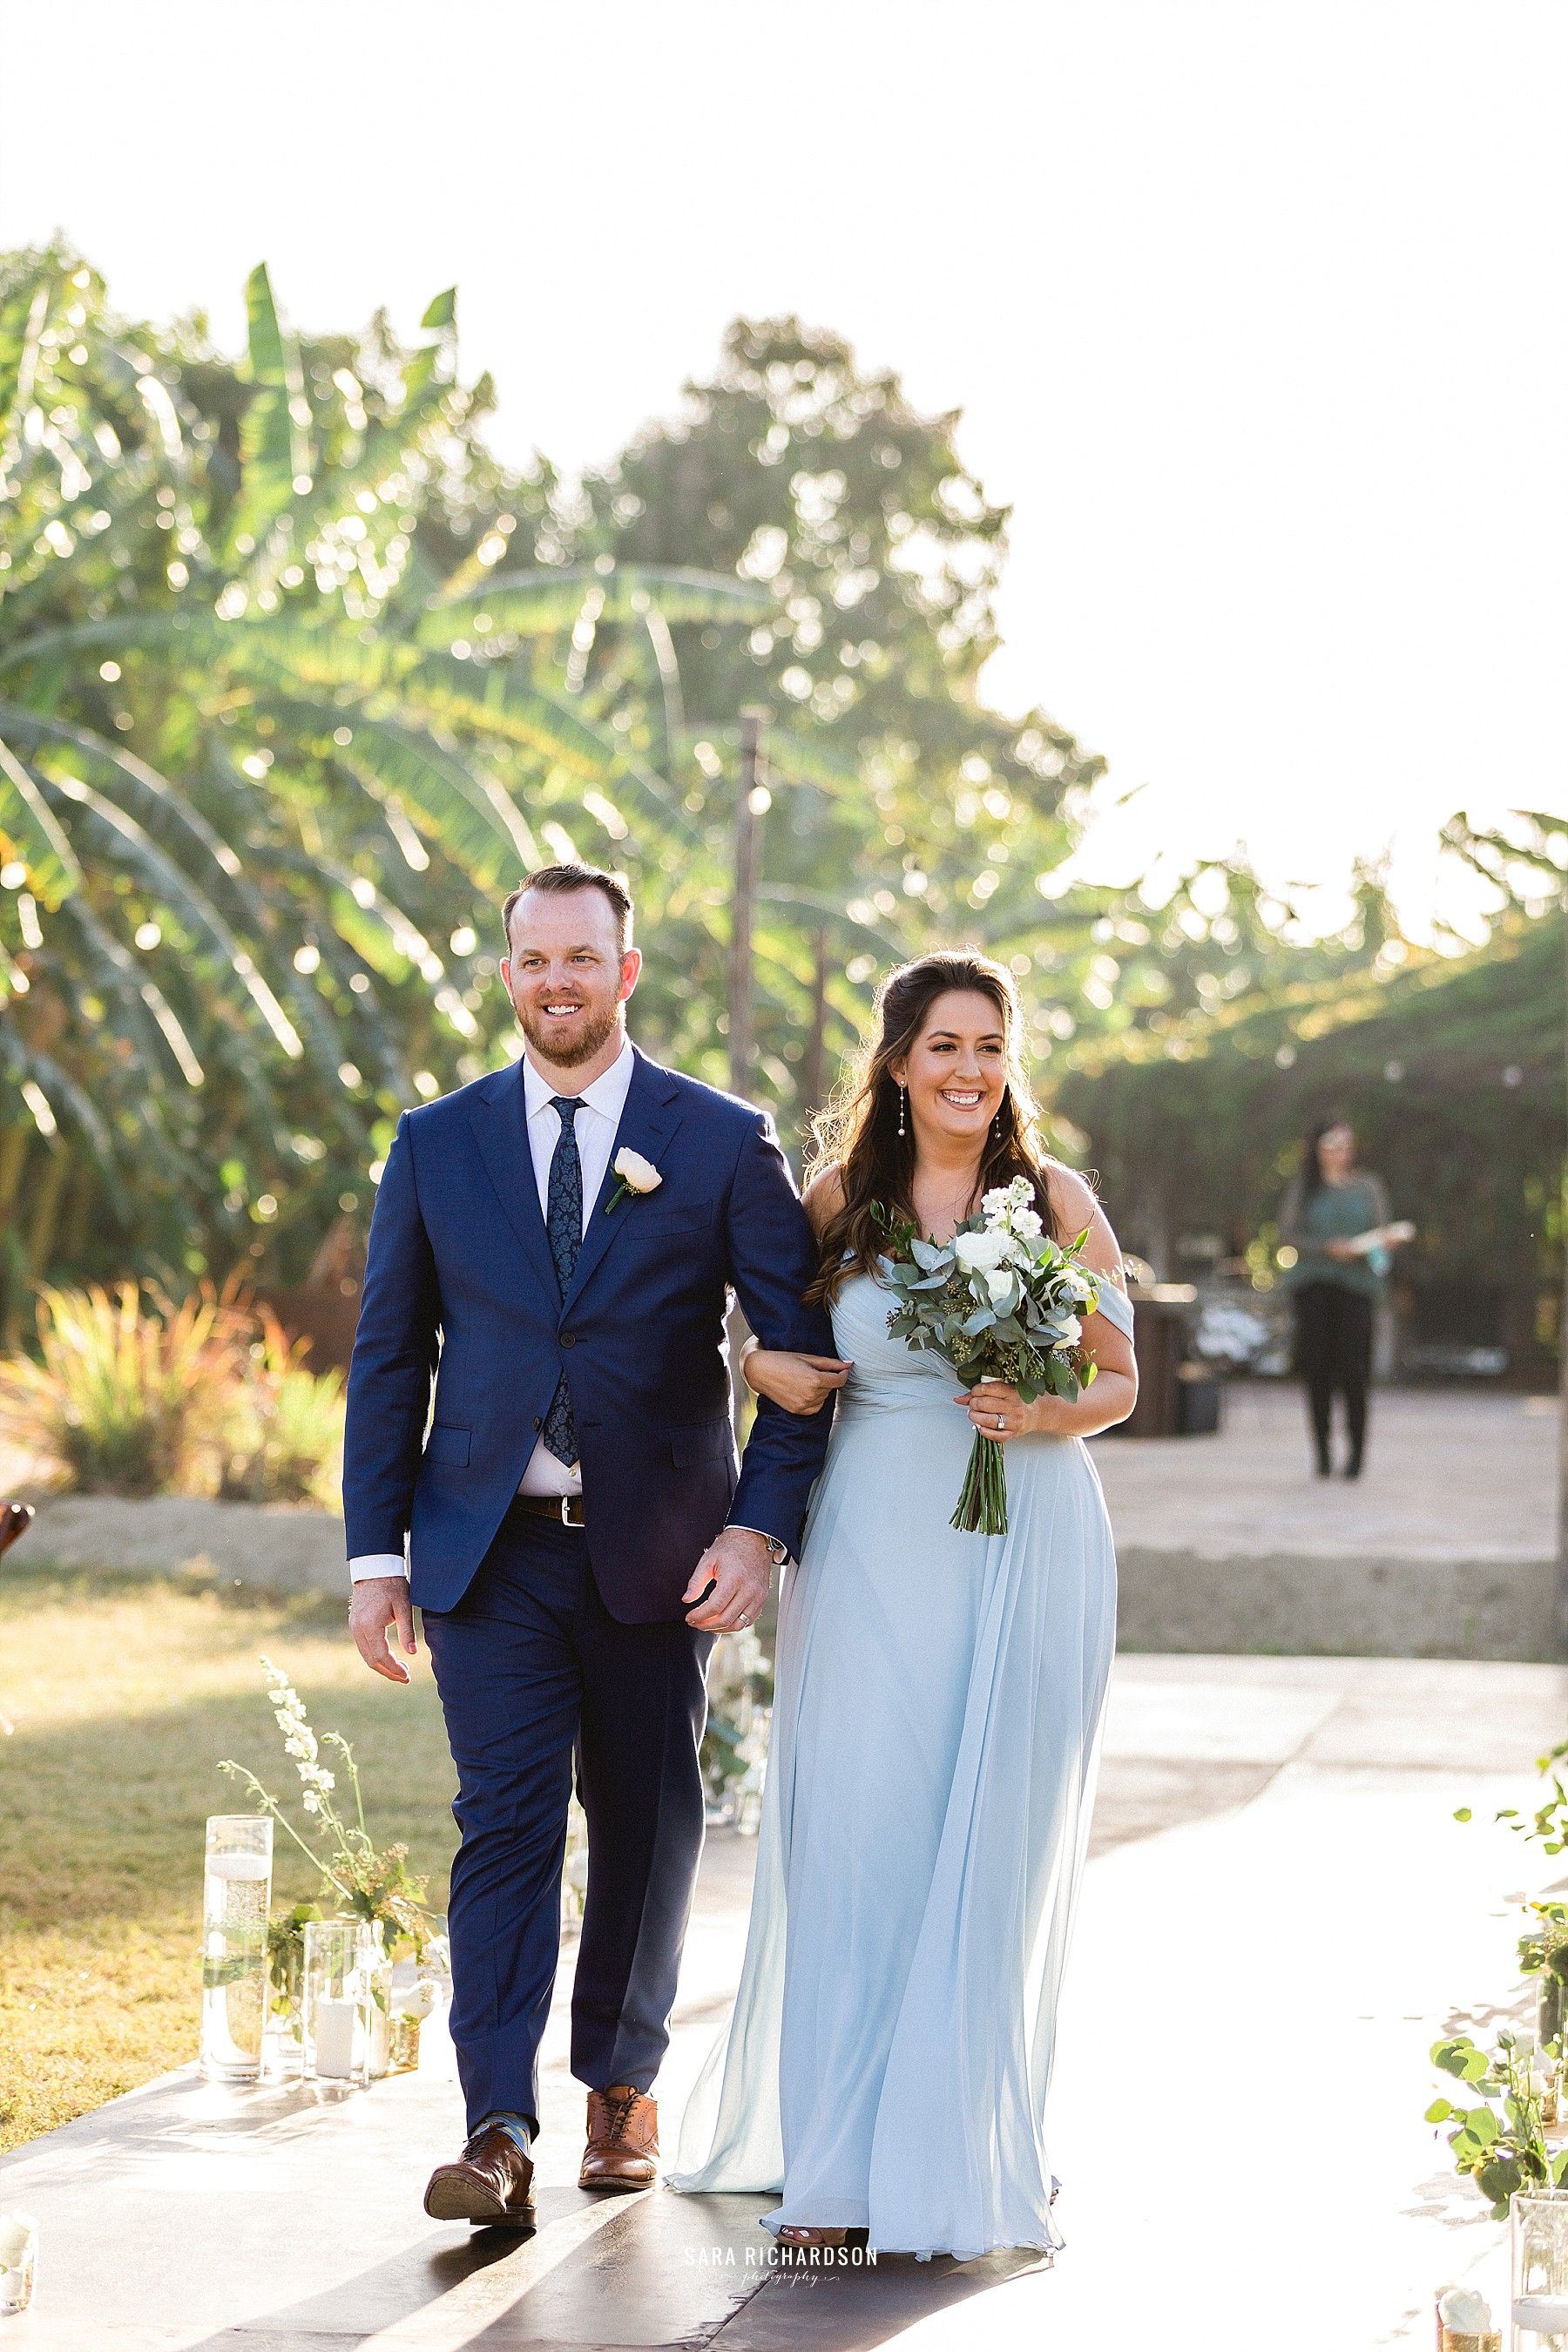 Bridesmaid and Groomsman walking down the aisle, making way for the beautiful Bride. This wedding took place in February of 2019, in Los Cabos Mexico. It is one of the biggest wedding destinations in the world.